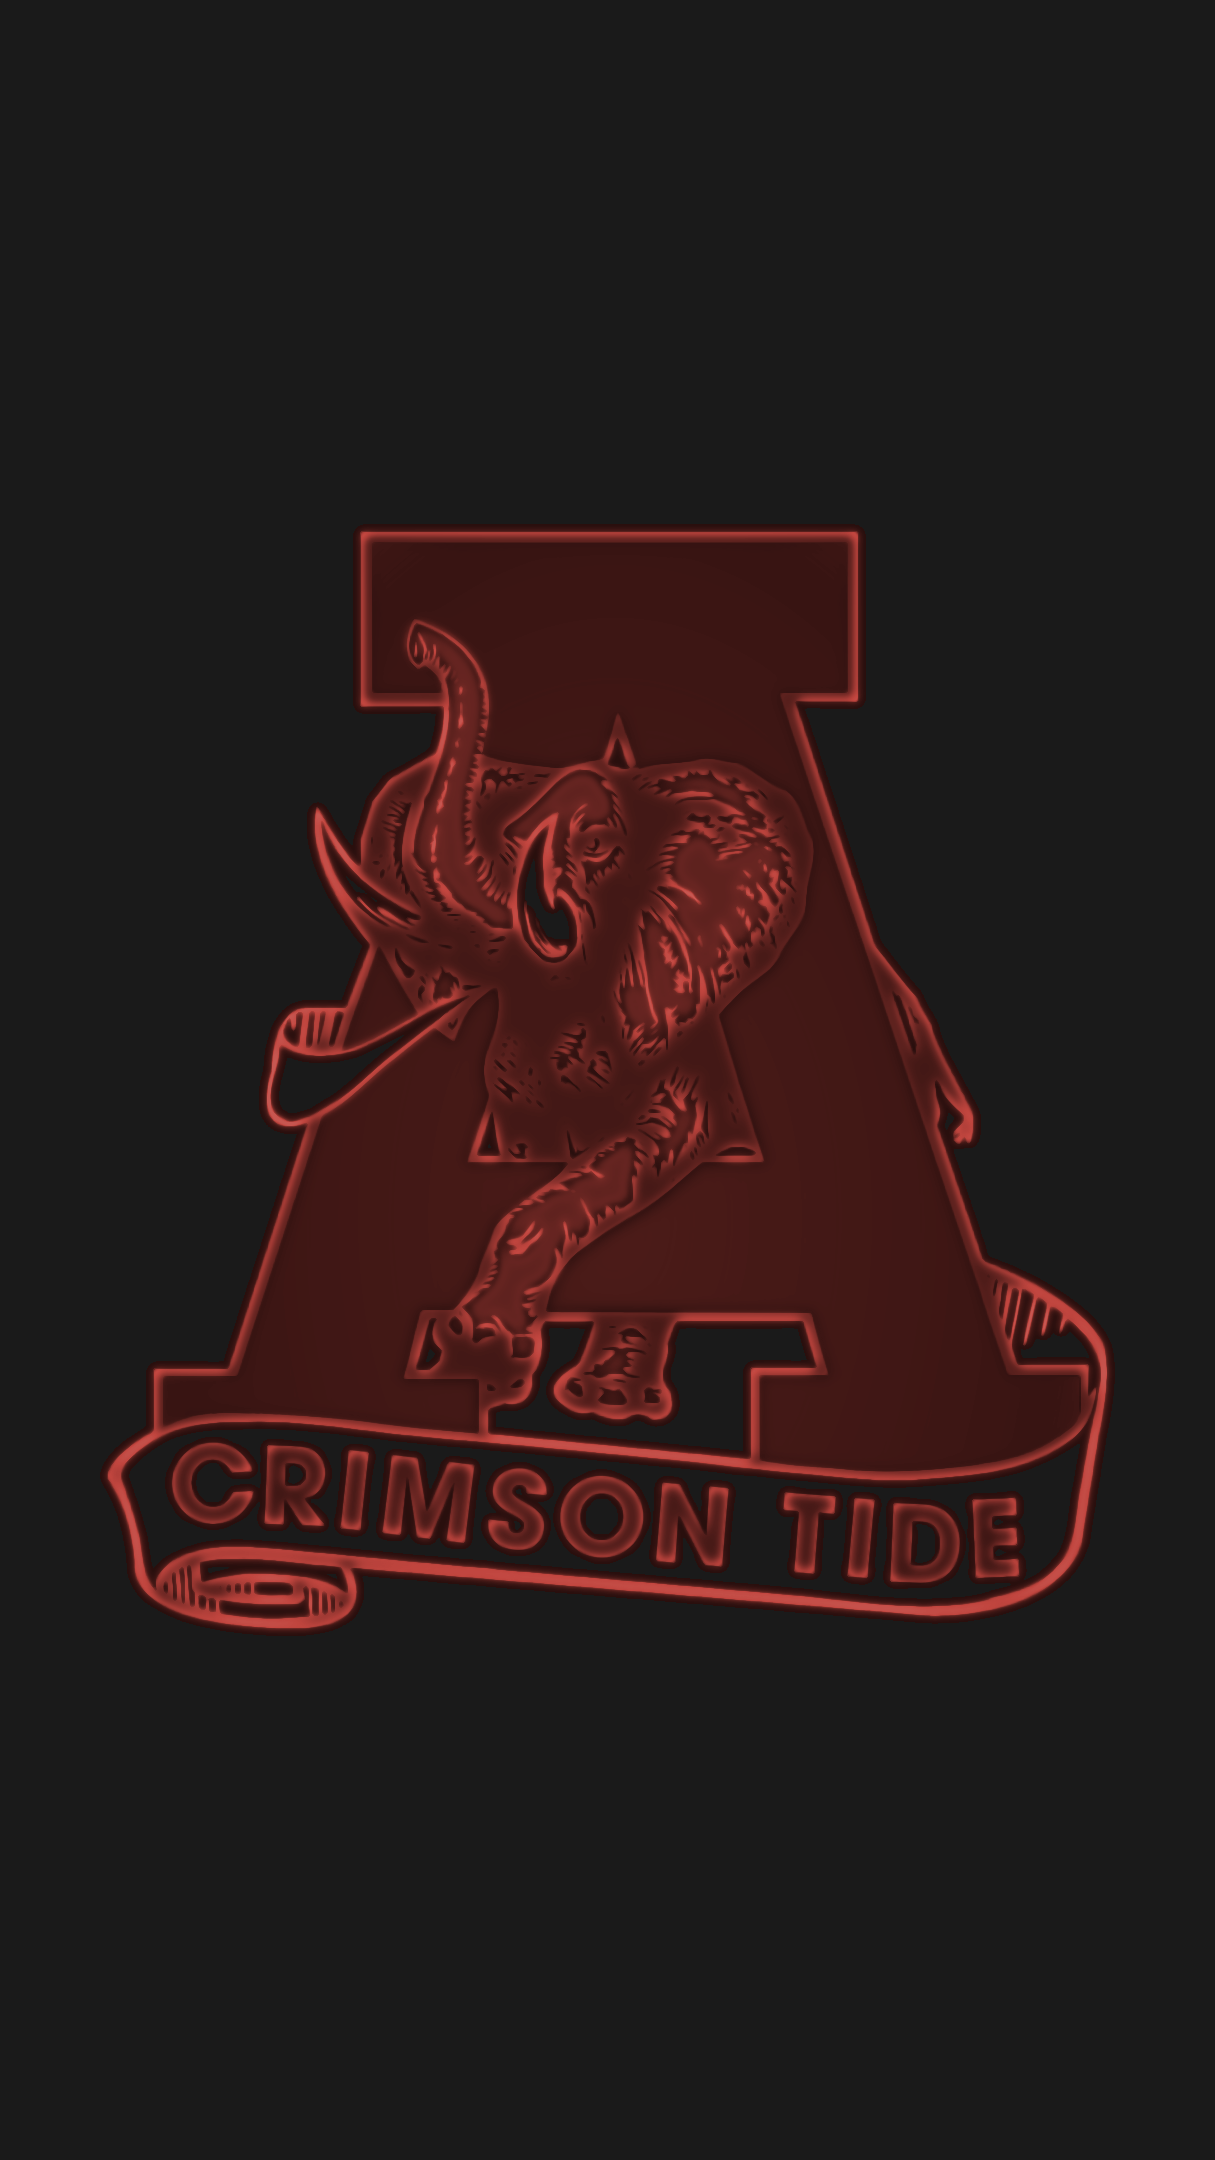 Alabama Crimson Tide Football Logo Wallpaper Iphone Android Roll Tide Alabama Crimson Tide Football Alabama Crimson Tide Football Wallpaper Football Wallpaper